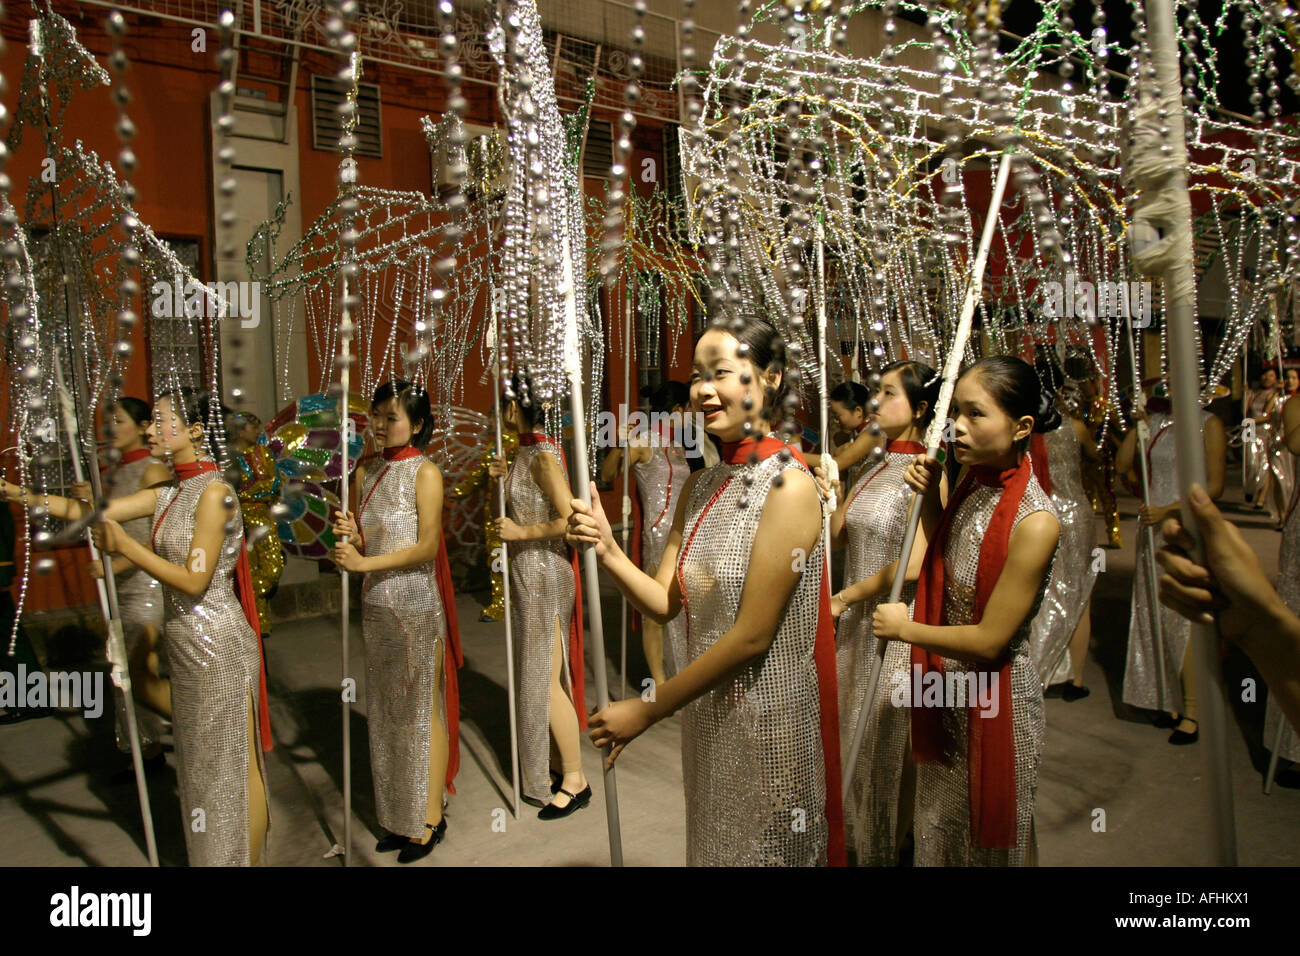 West Lake Expo, Hangzhou, China: Girl students in costumes prepare backstage to perform at the opening ceremony. - Stock Image